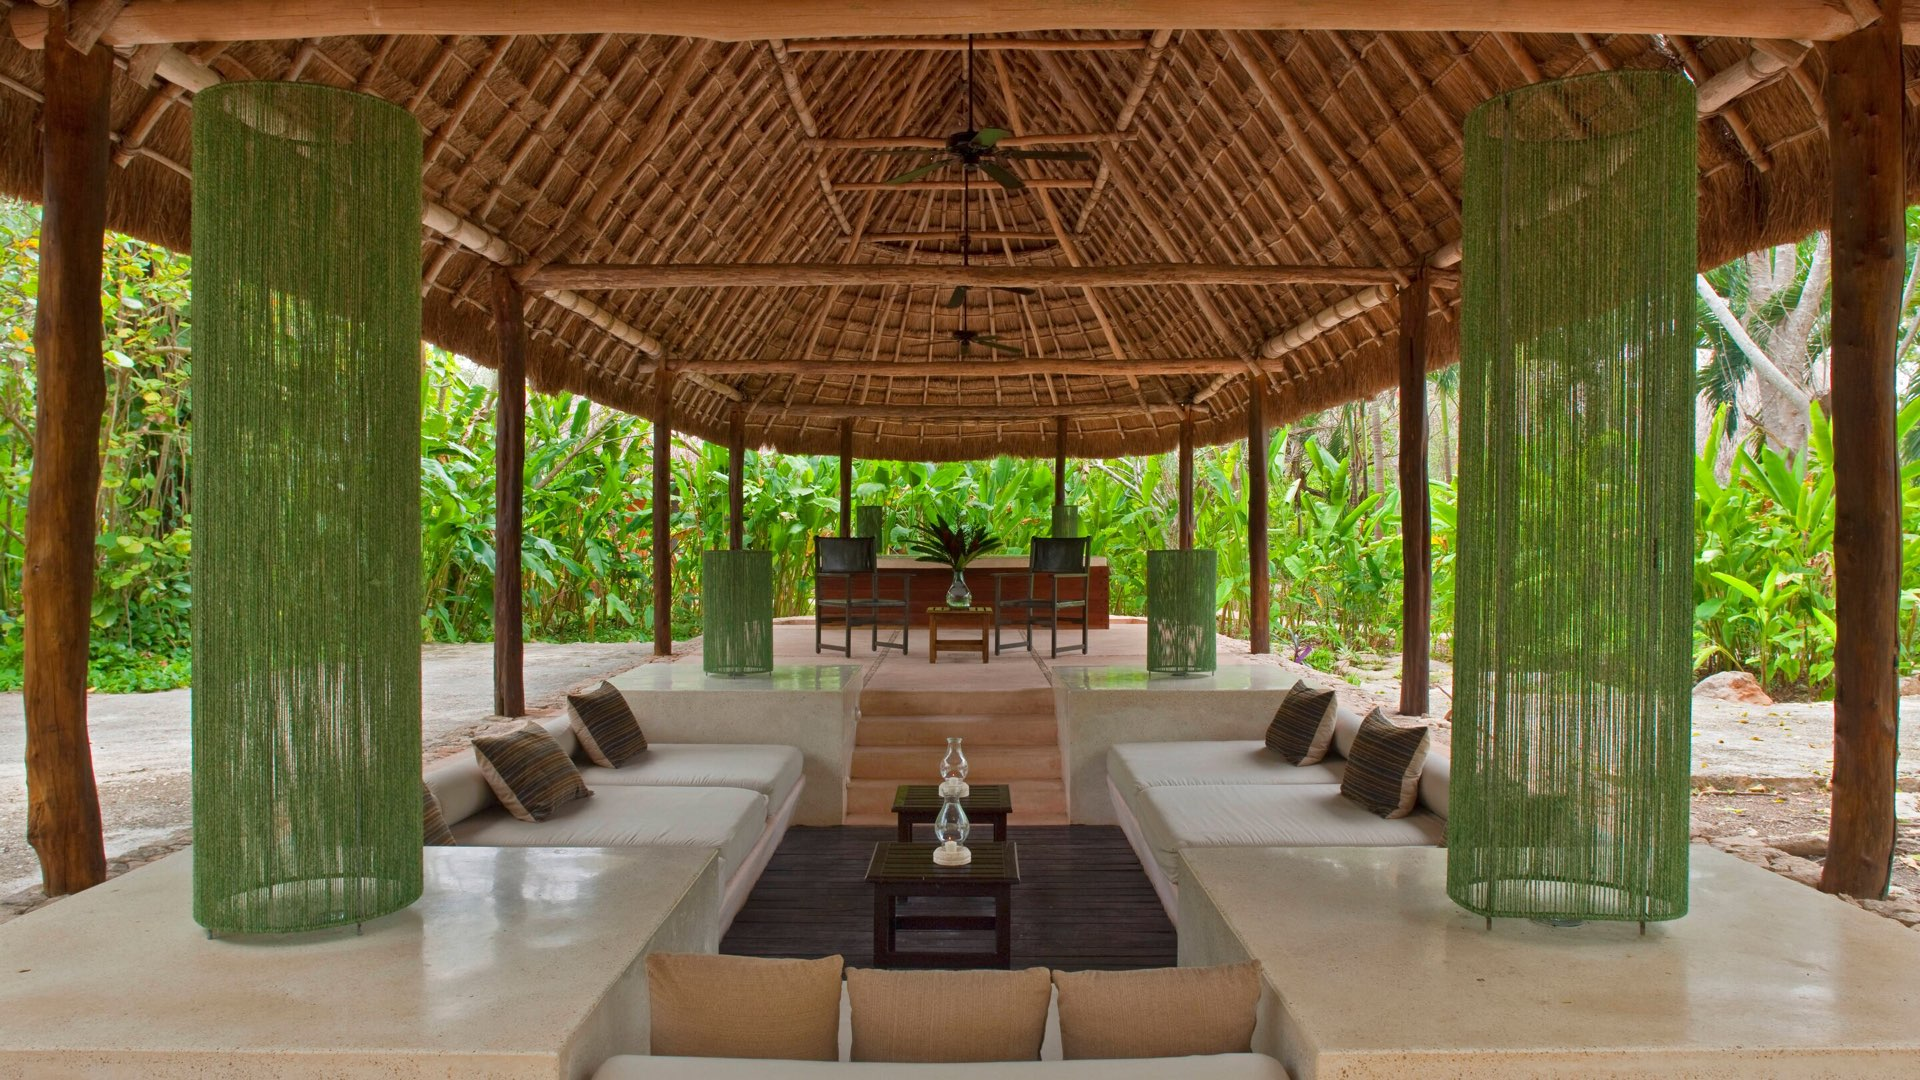 midlc-palapa-spa-1274-hor-wide